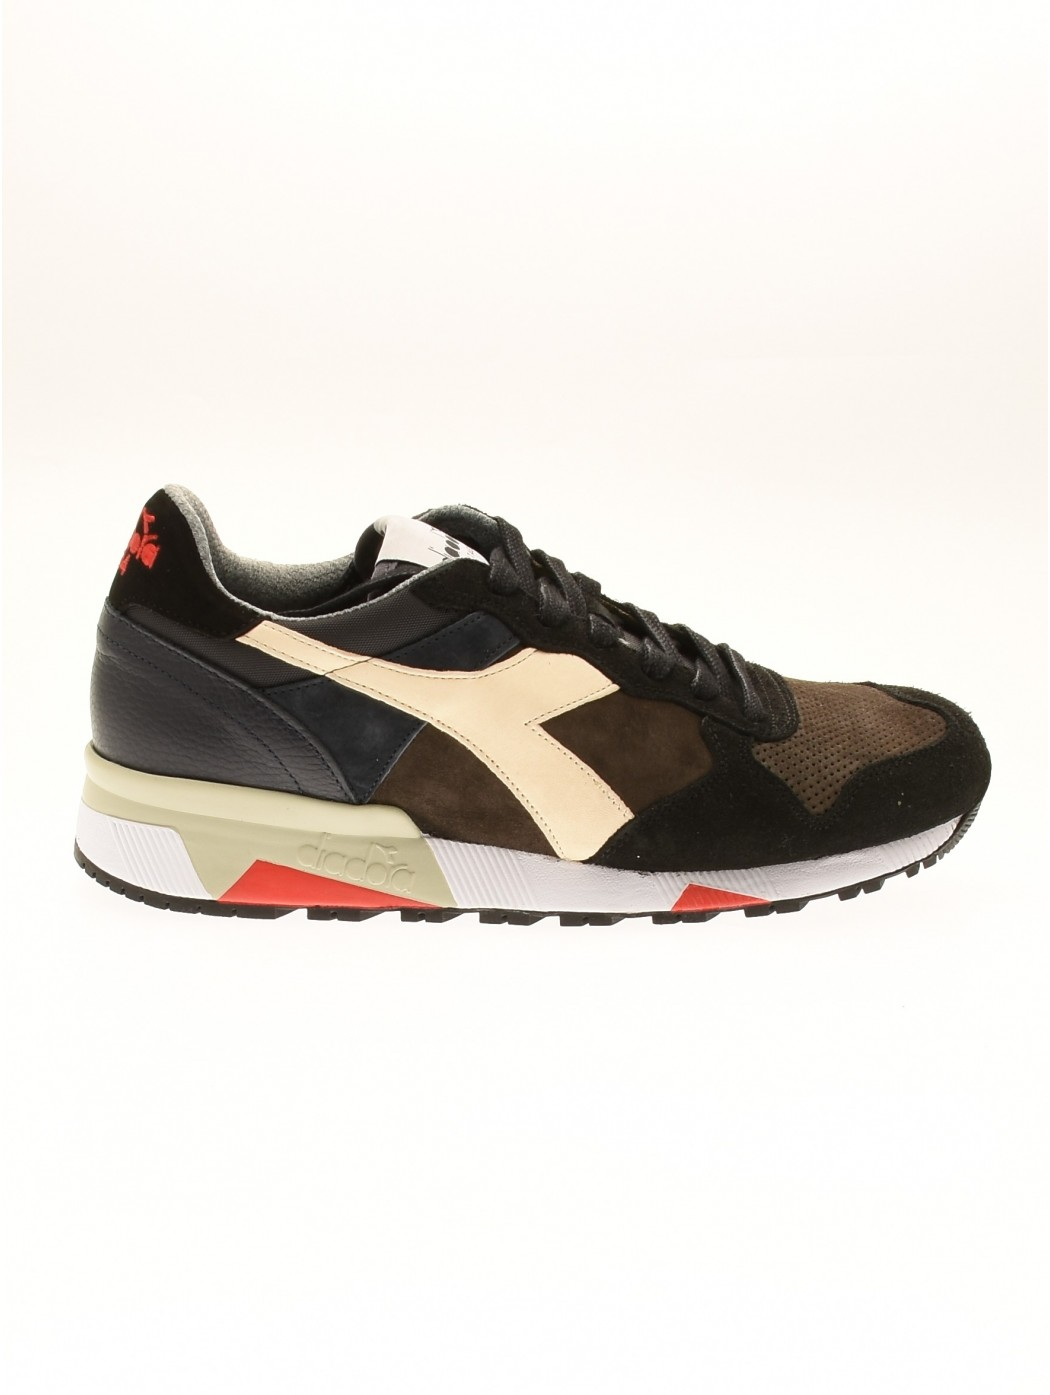 TRIDENT 90 LEATHER DIADORA...